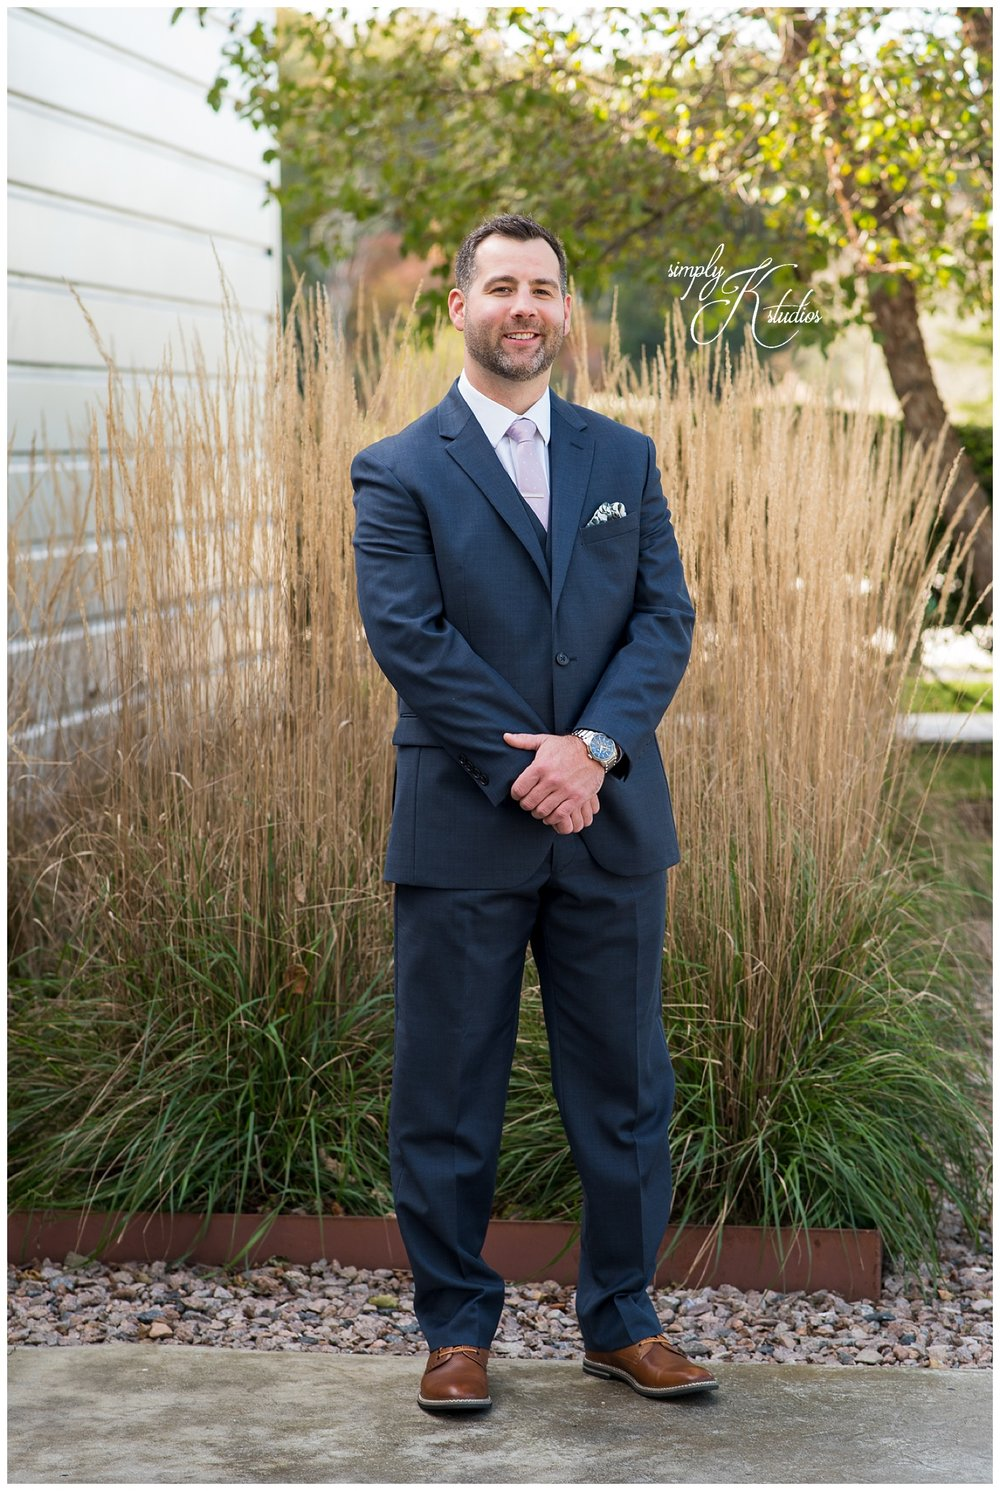 45 Groom wearing a suit.jpg